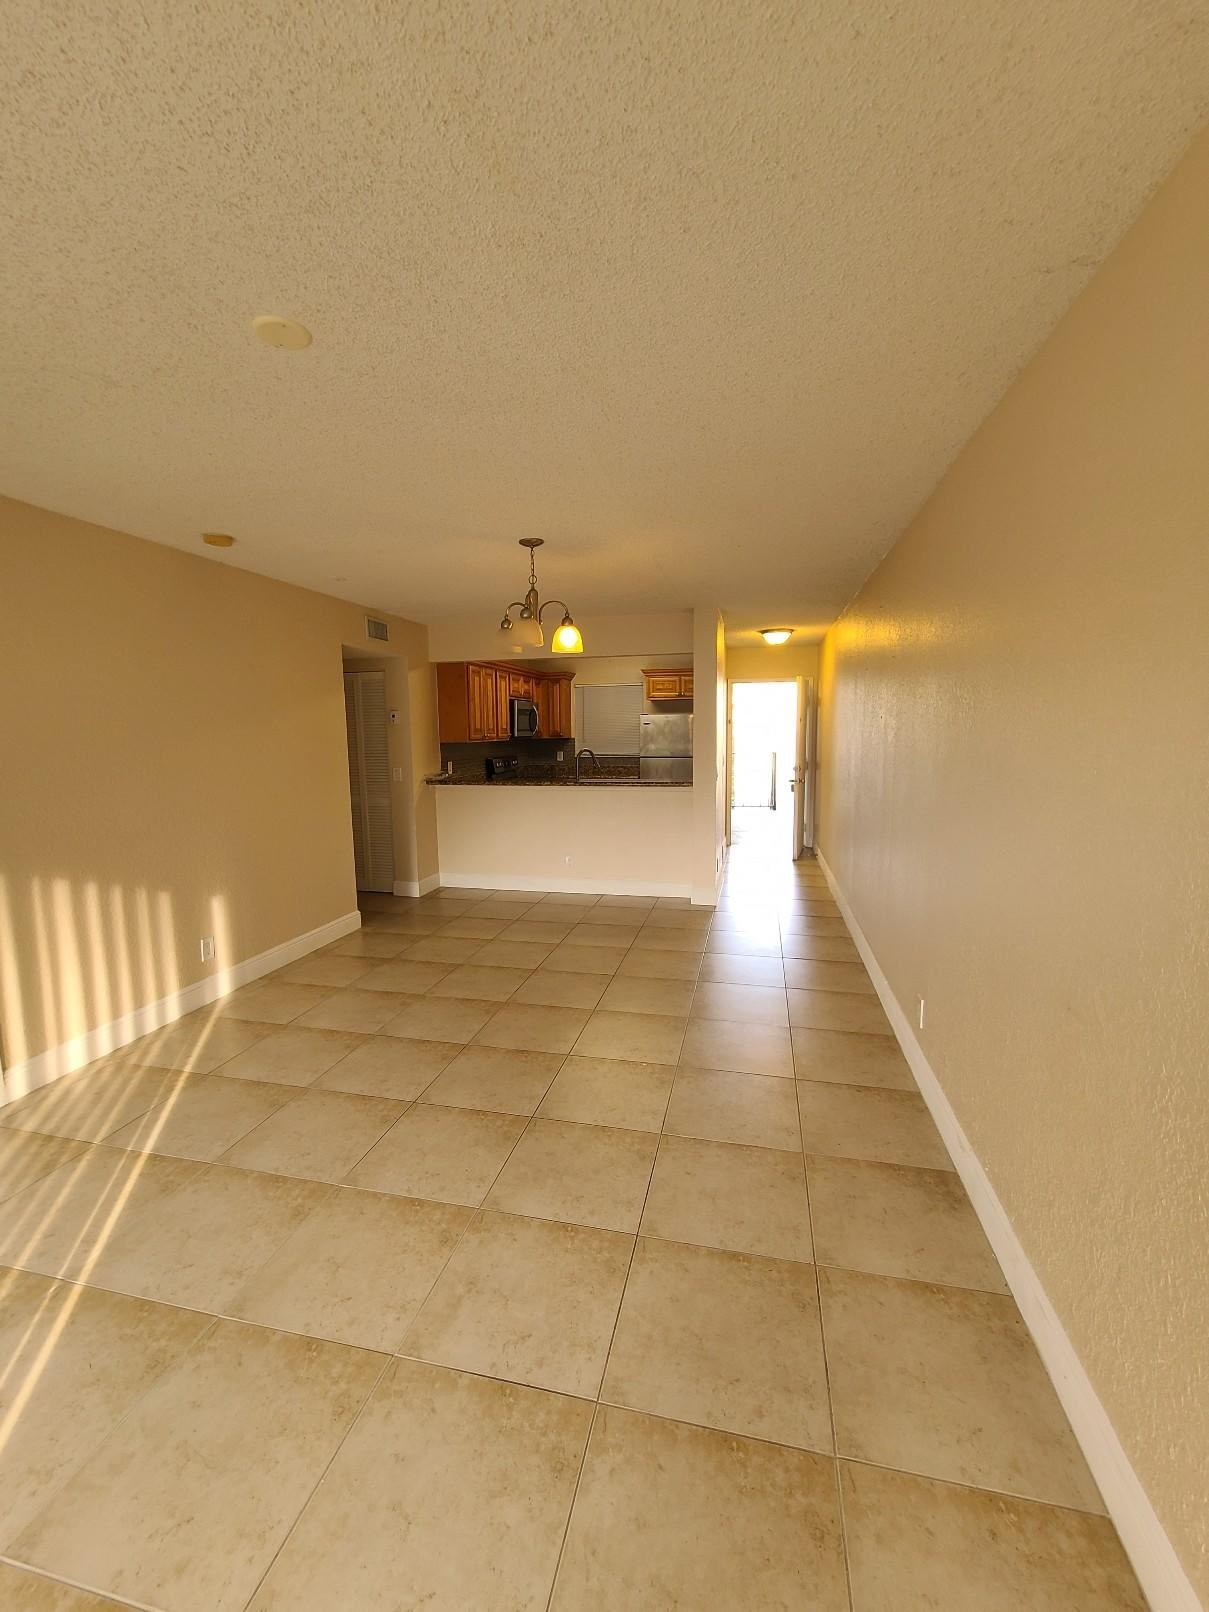 Photo of 1581 Balfour Point Drive #G, West Palm Beach, FL 33411 (MLS # RX-10686742)